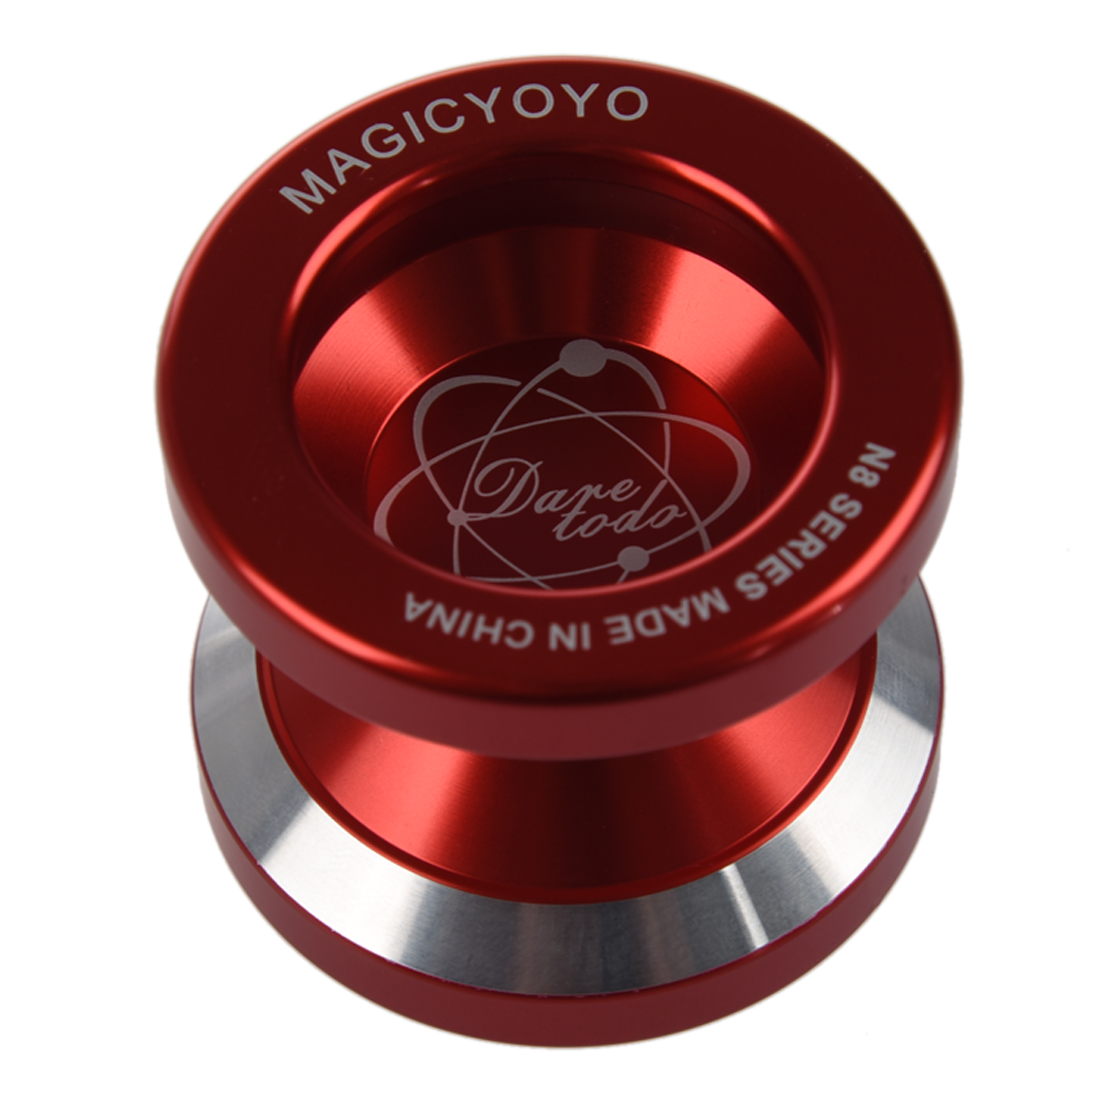 New Magic Yo-Yo N8 Super Professional YoYo + String + Free Bag +Free Glove (Red)